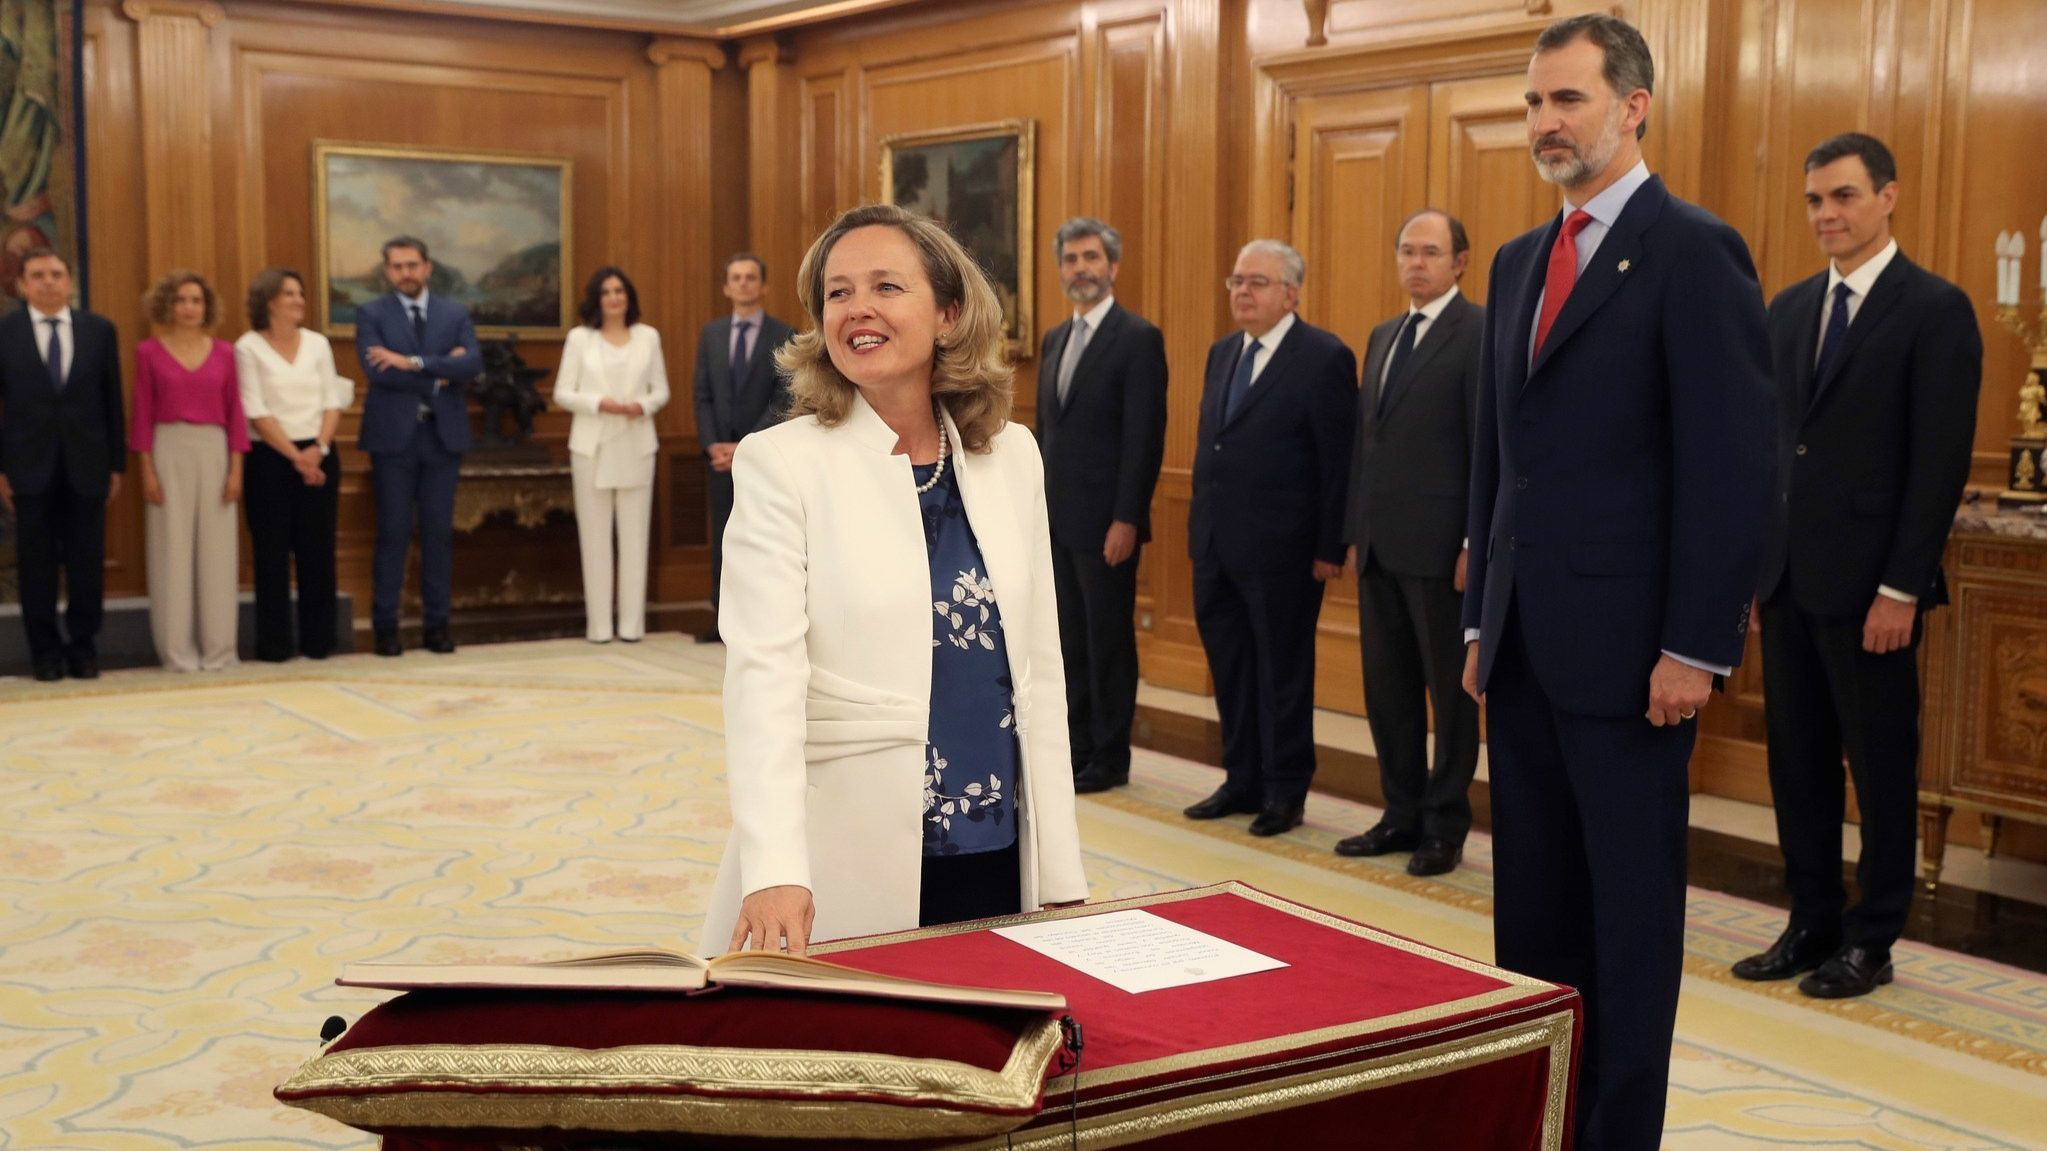 In Spain's new 17-member Cabinet under Prime Minister Pedro Sanchez, 11 ministers are women